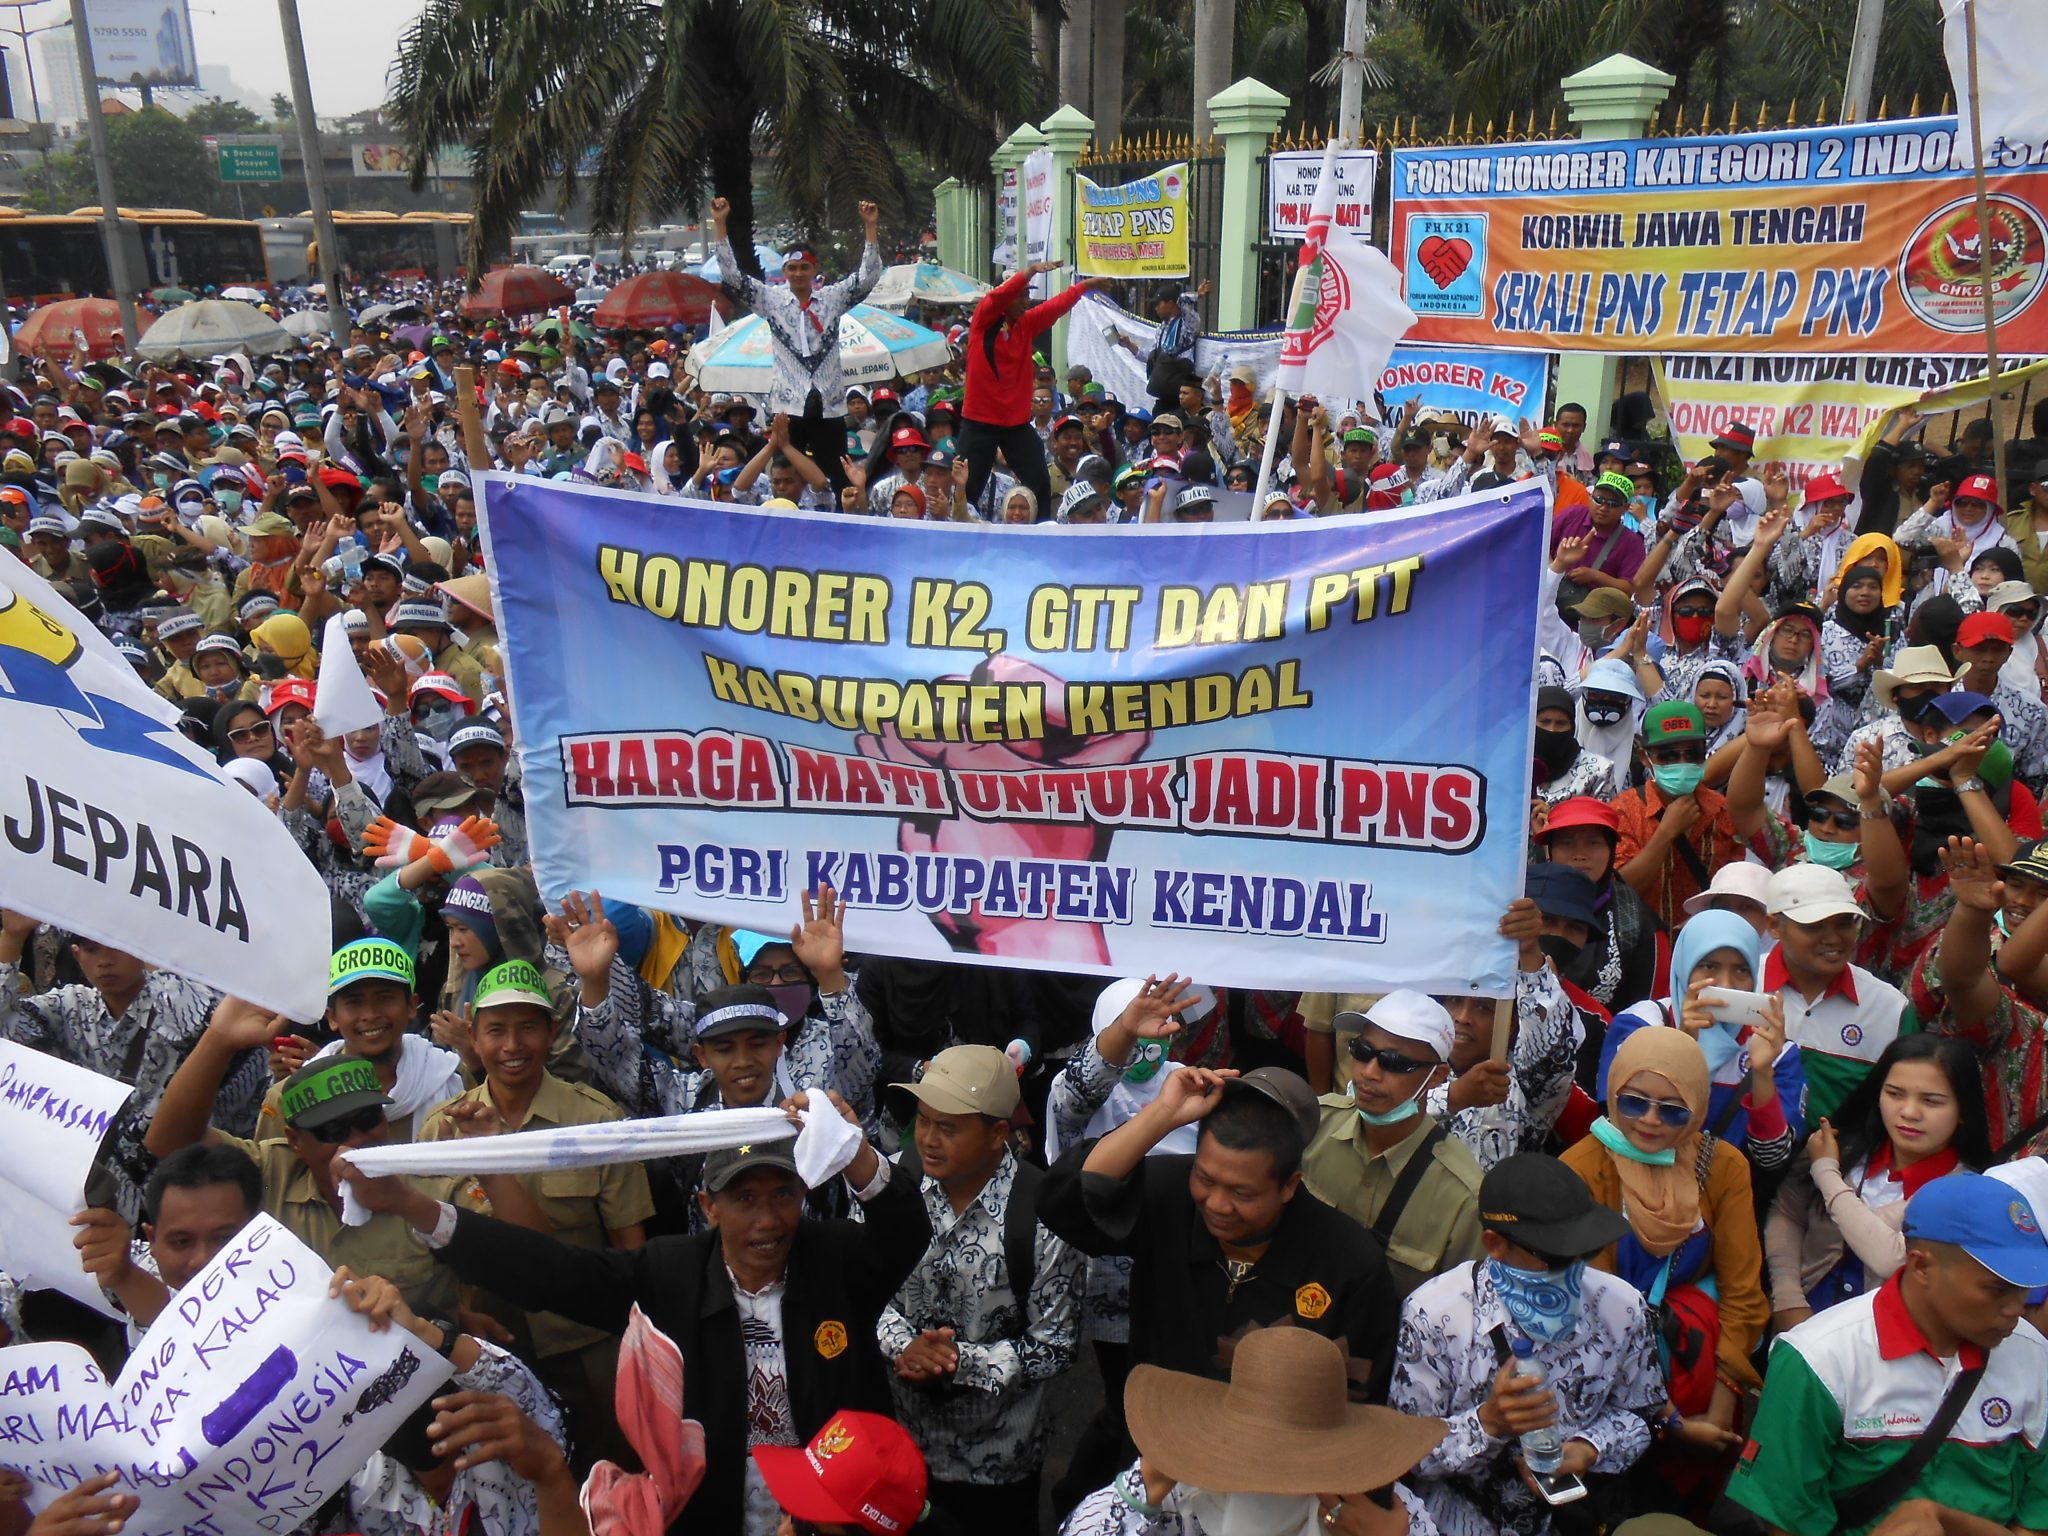 FOTO AKSI GURU HONORER, 15 SEPTEMBER 2015